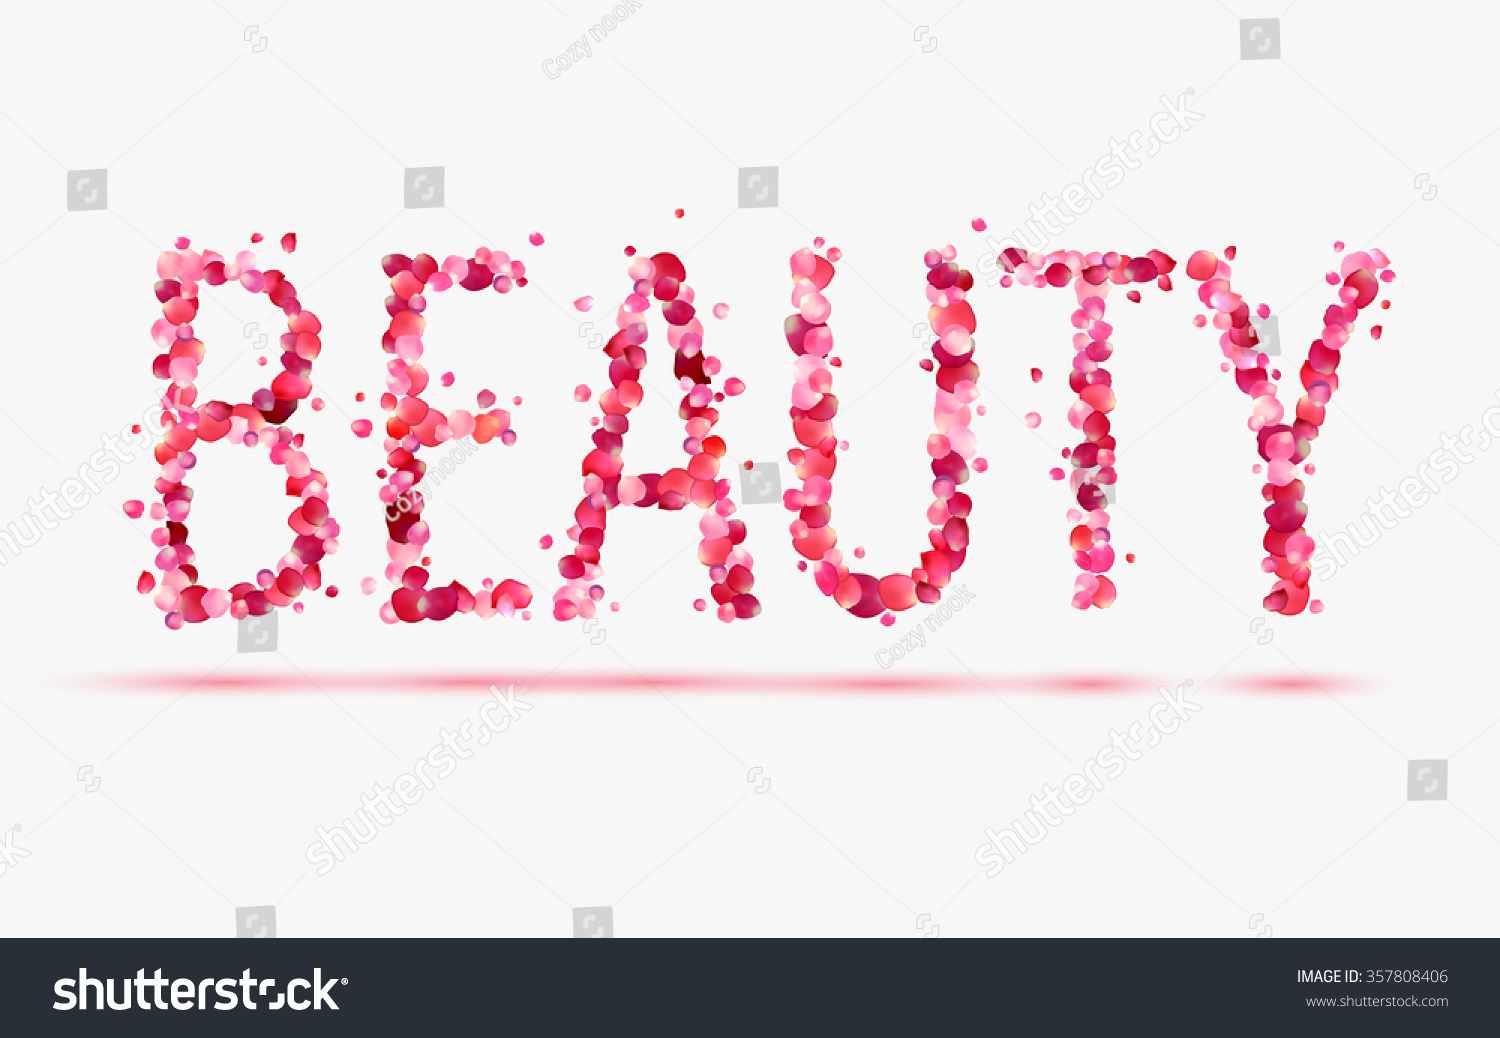 word beauty in pink rose petals stock vector illustration